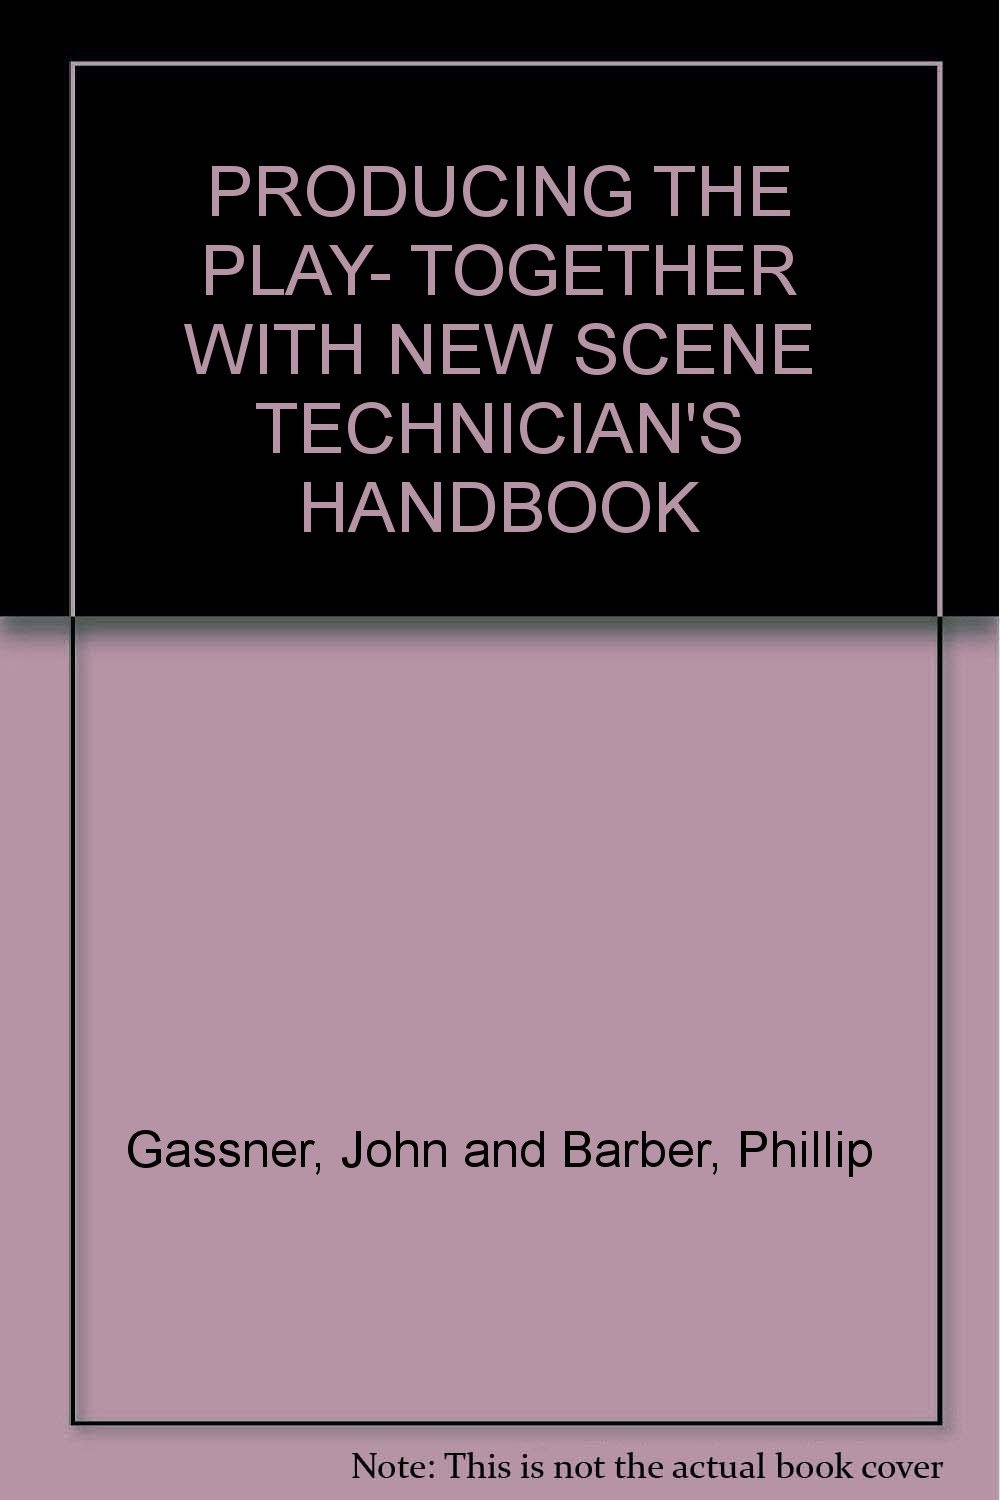 Producing the Play, with the New Scene Technician's Handbook.